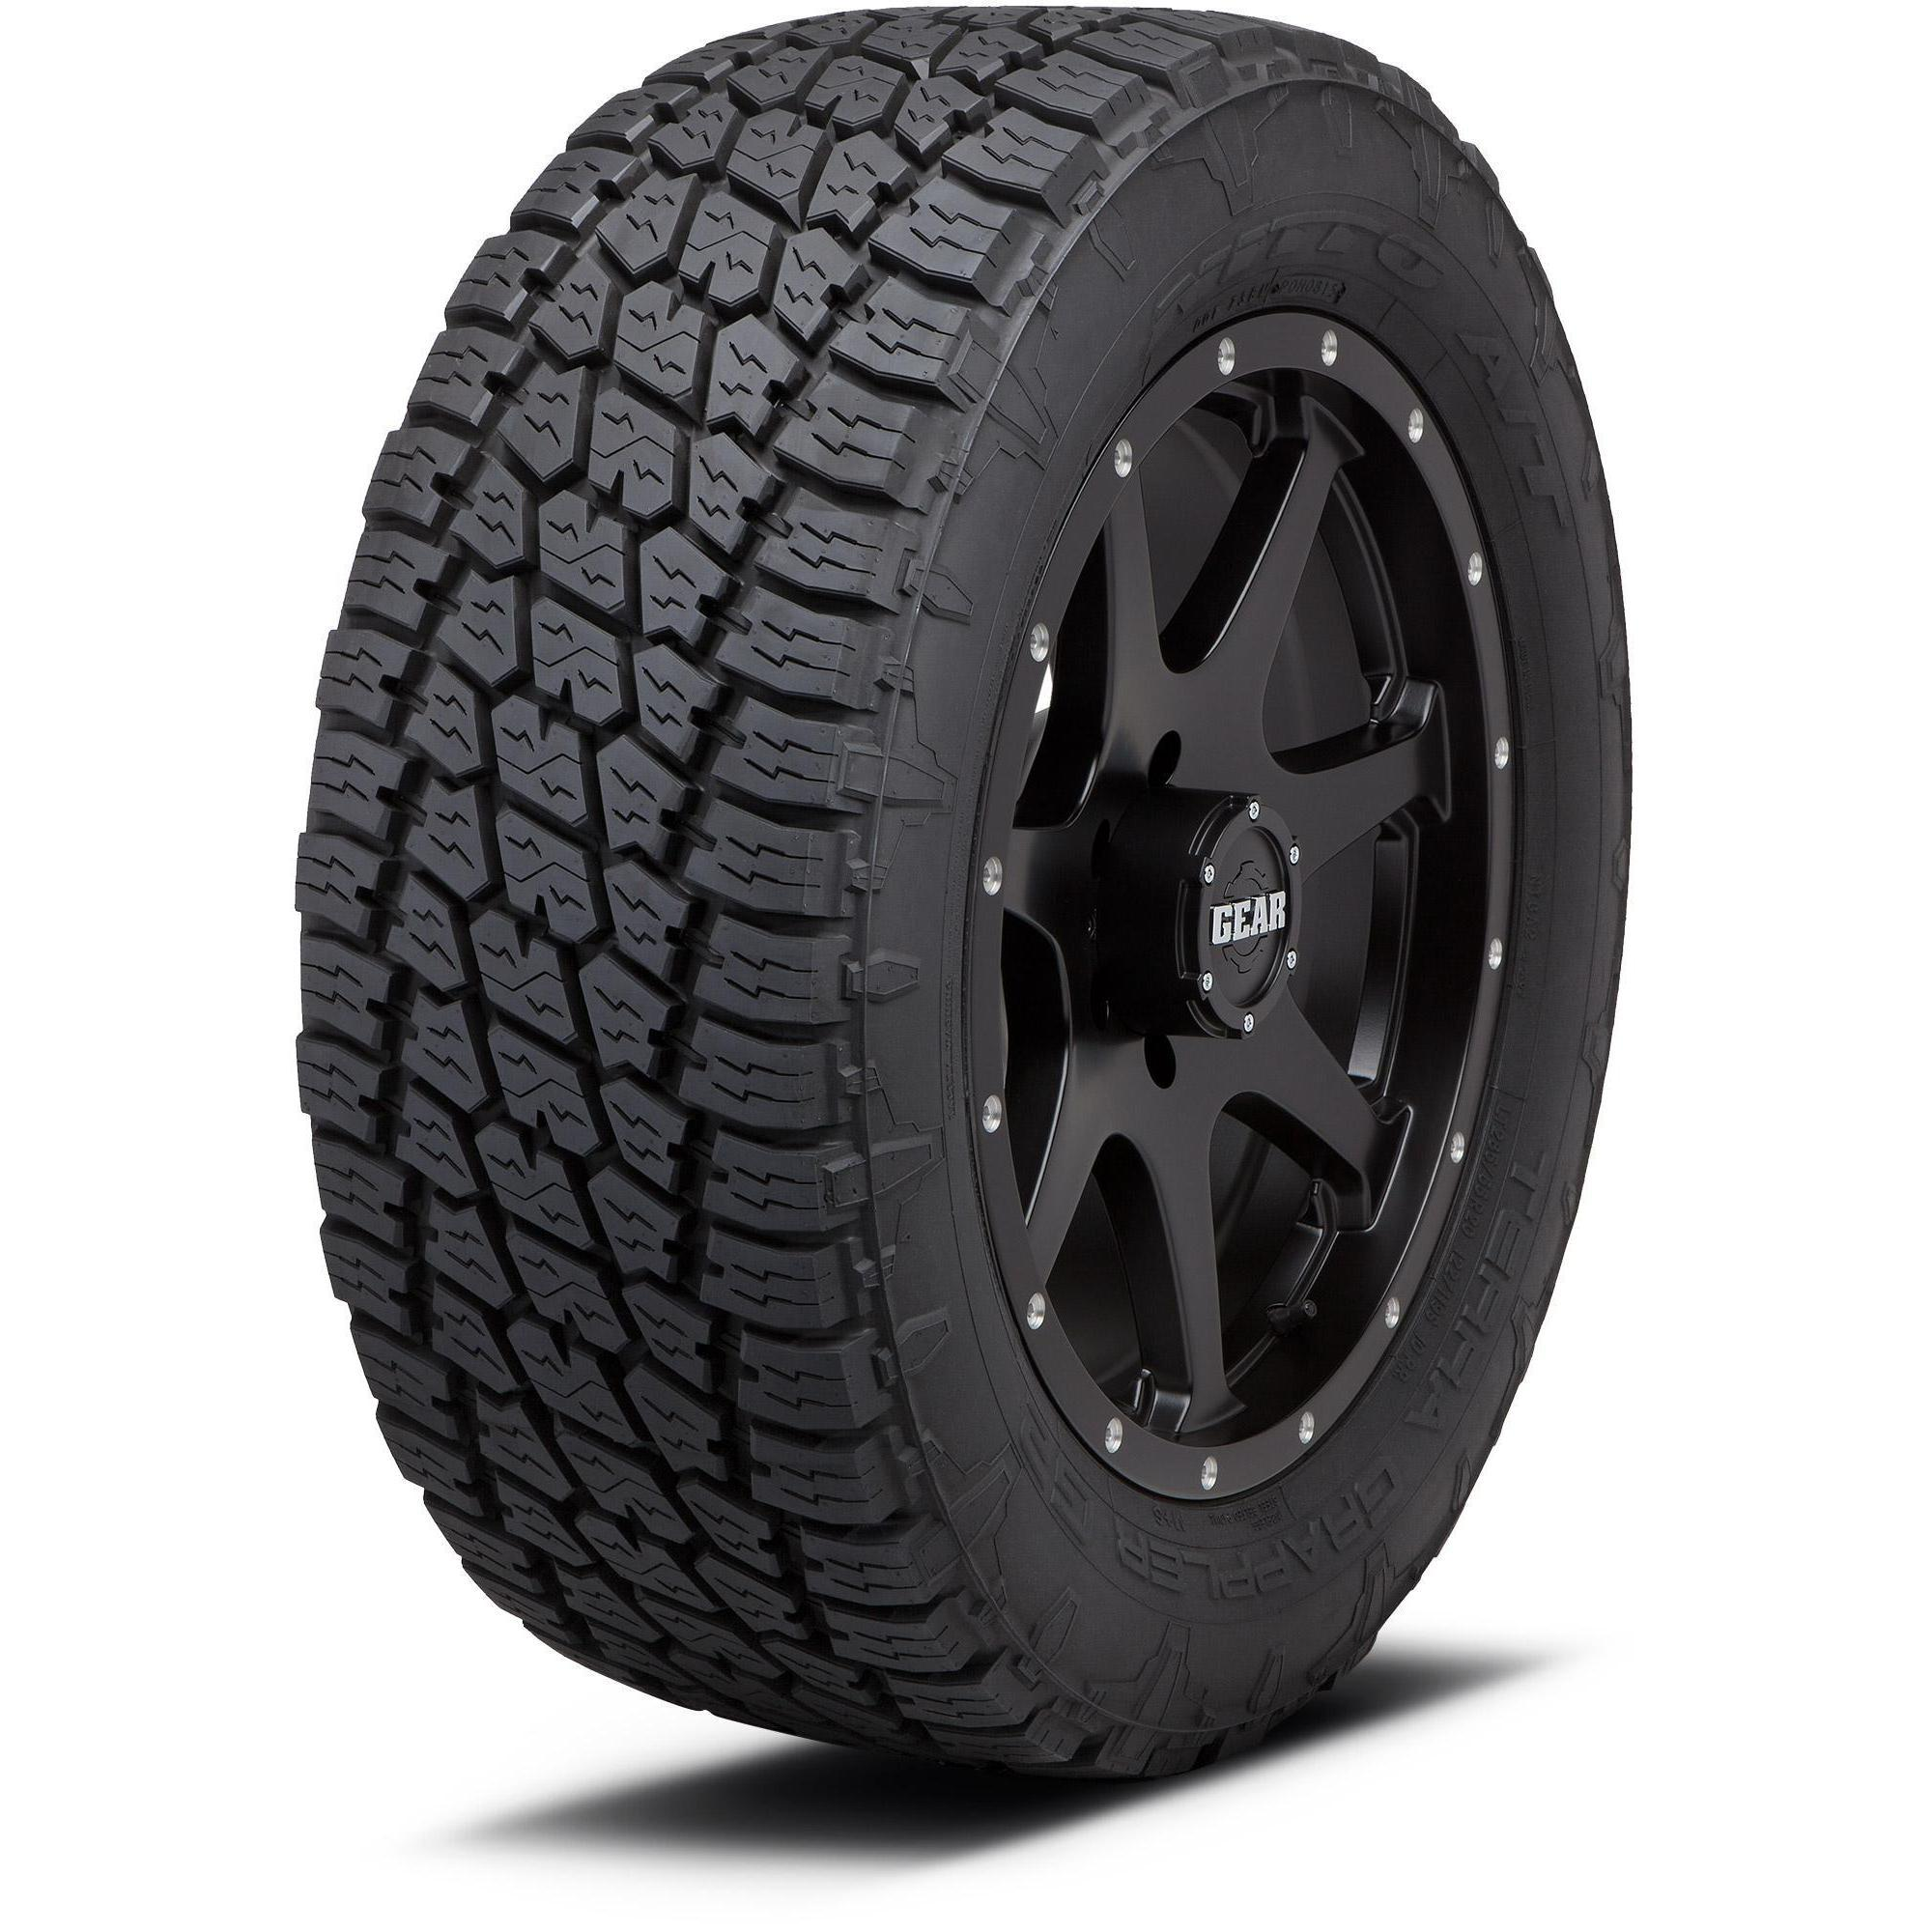 nitto tires cost